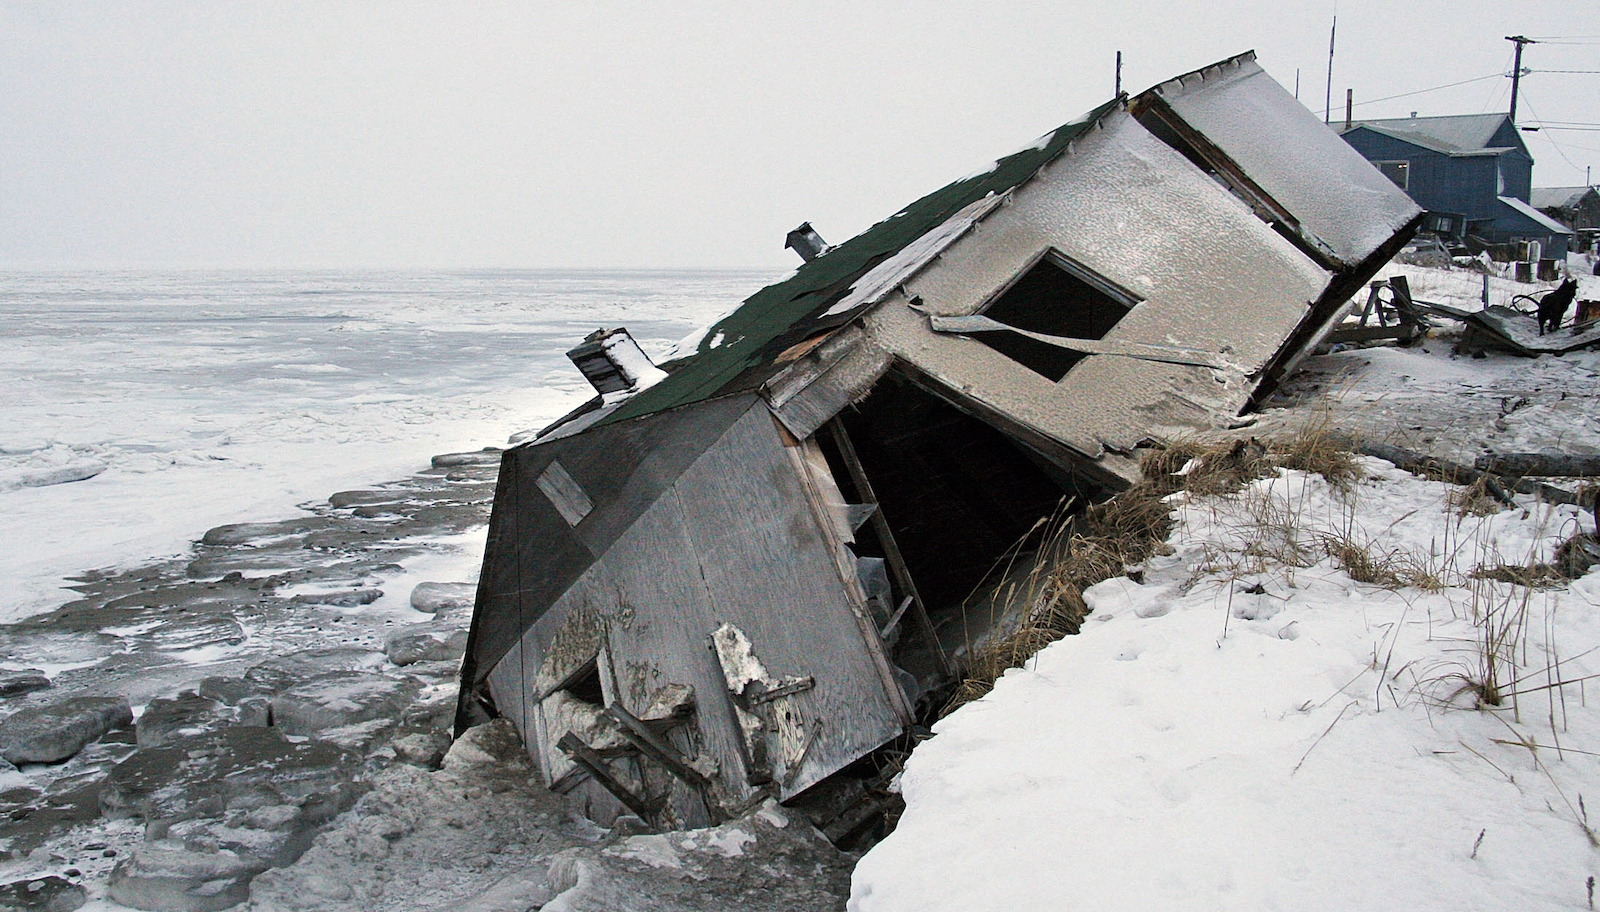 An abandoned house collapses into the water due to coastal erosion in Alaska.